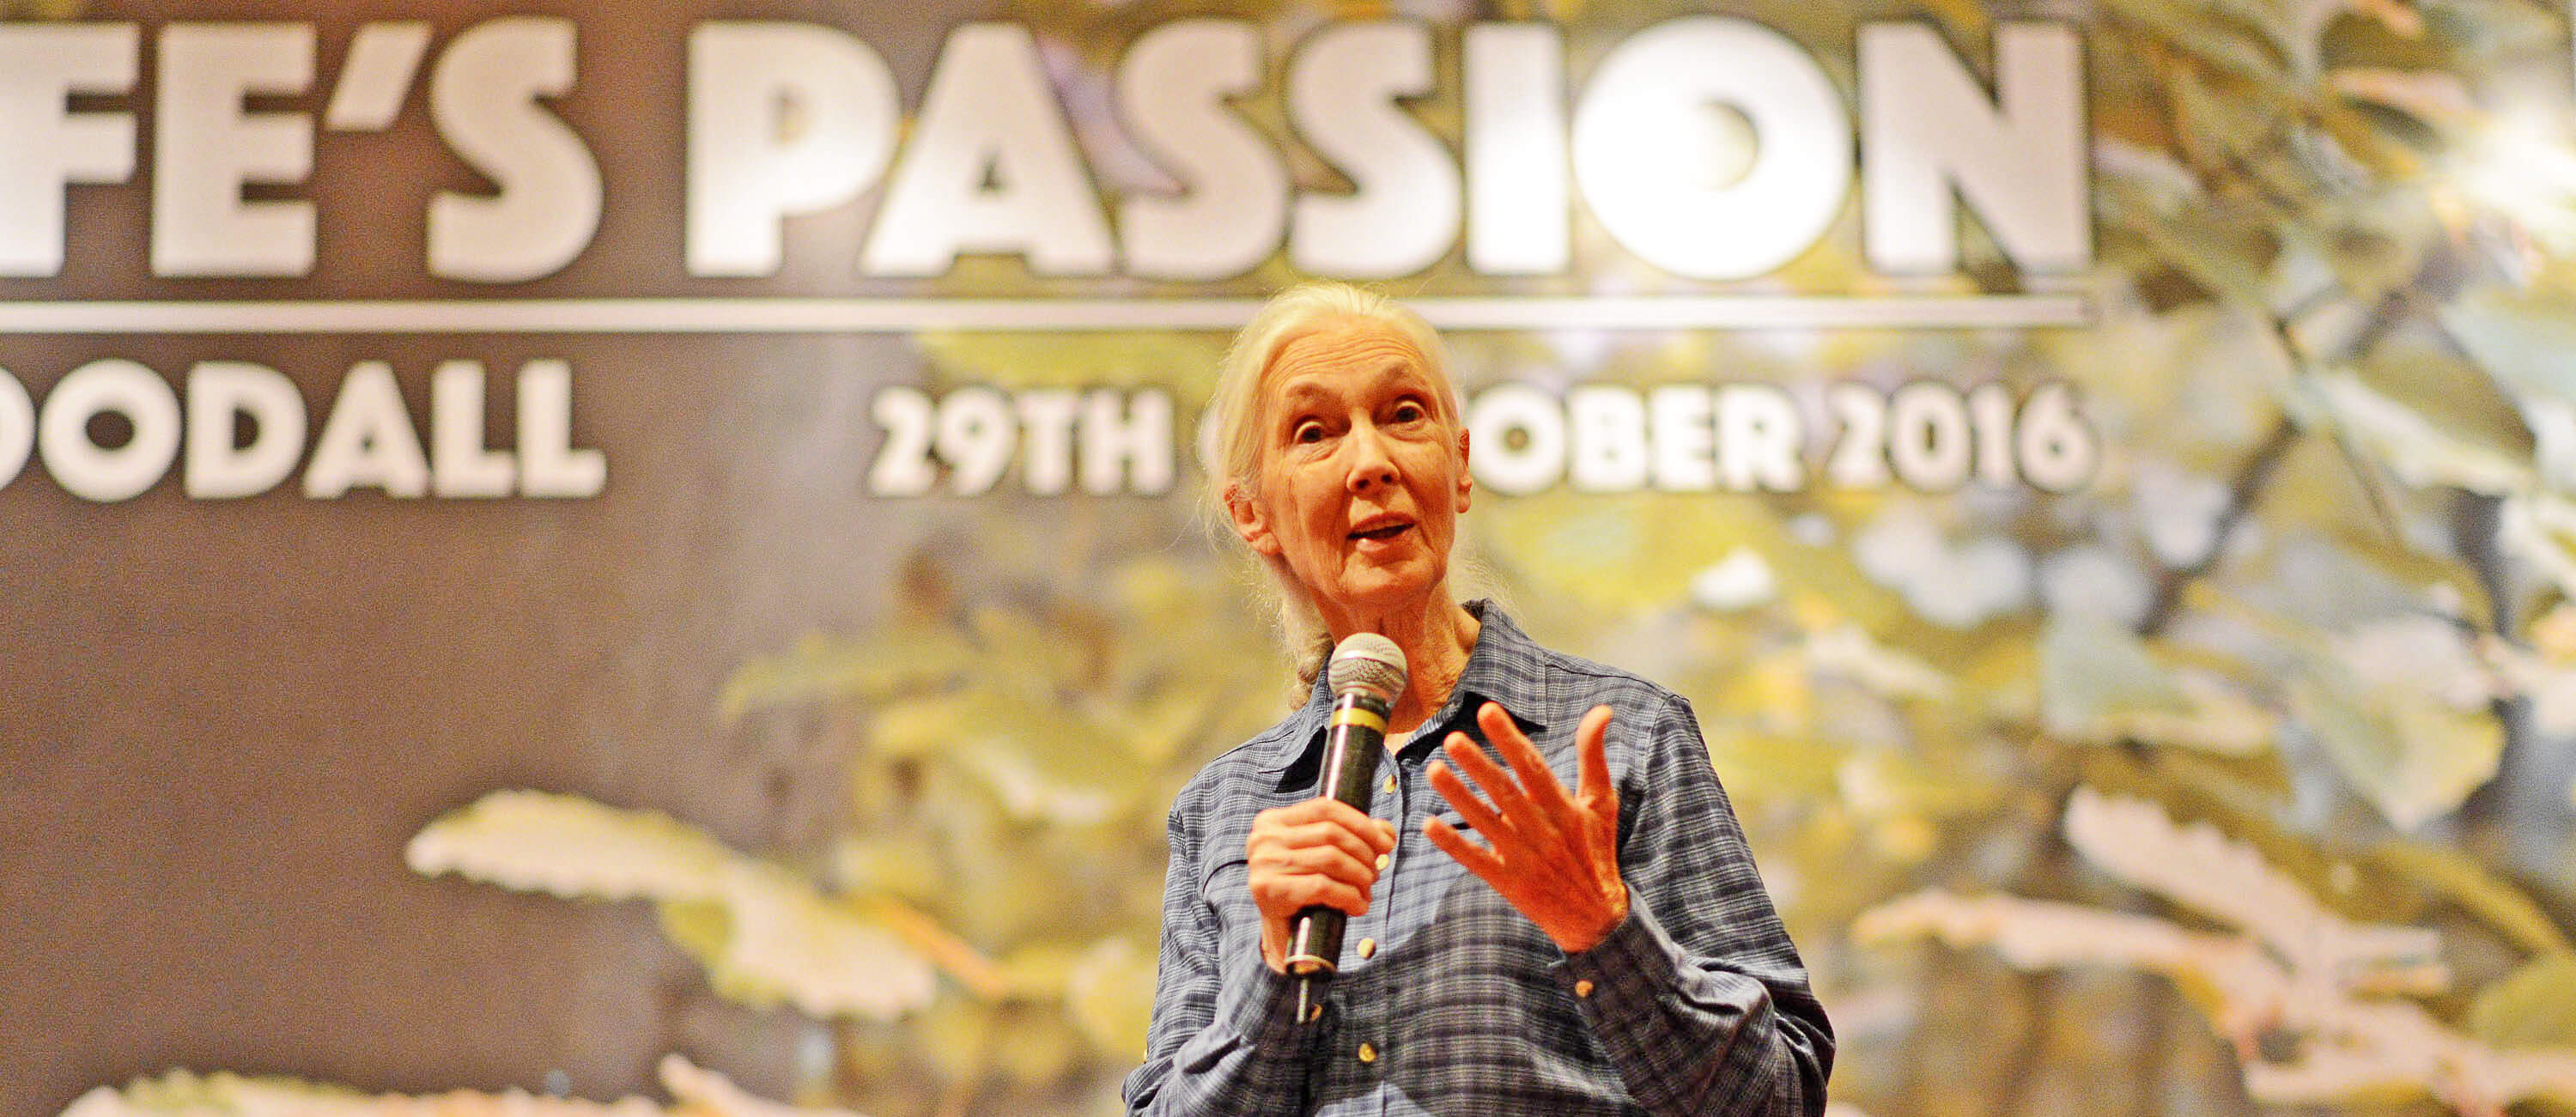 Dr. Jane Goodall participating in a Q&A session in Kuala Lumpur, Malaysia. 2016